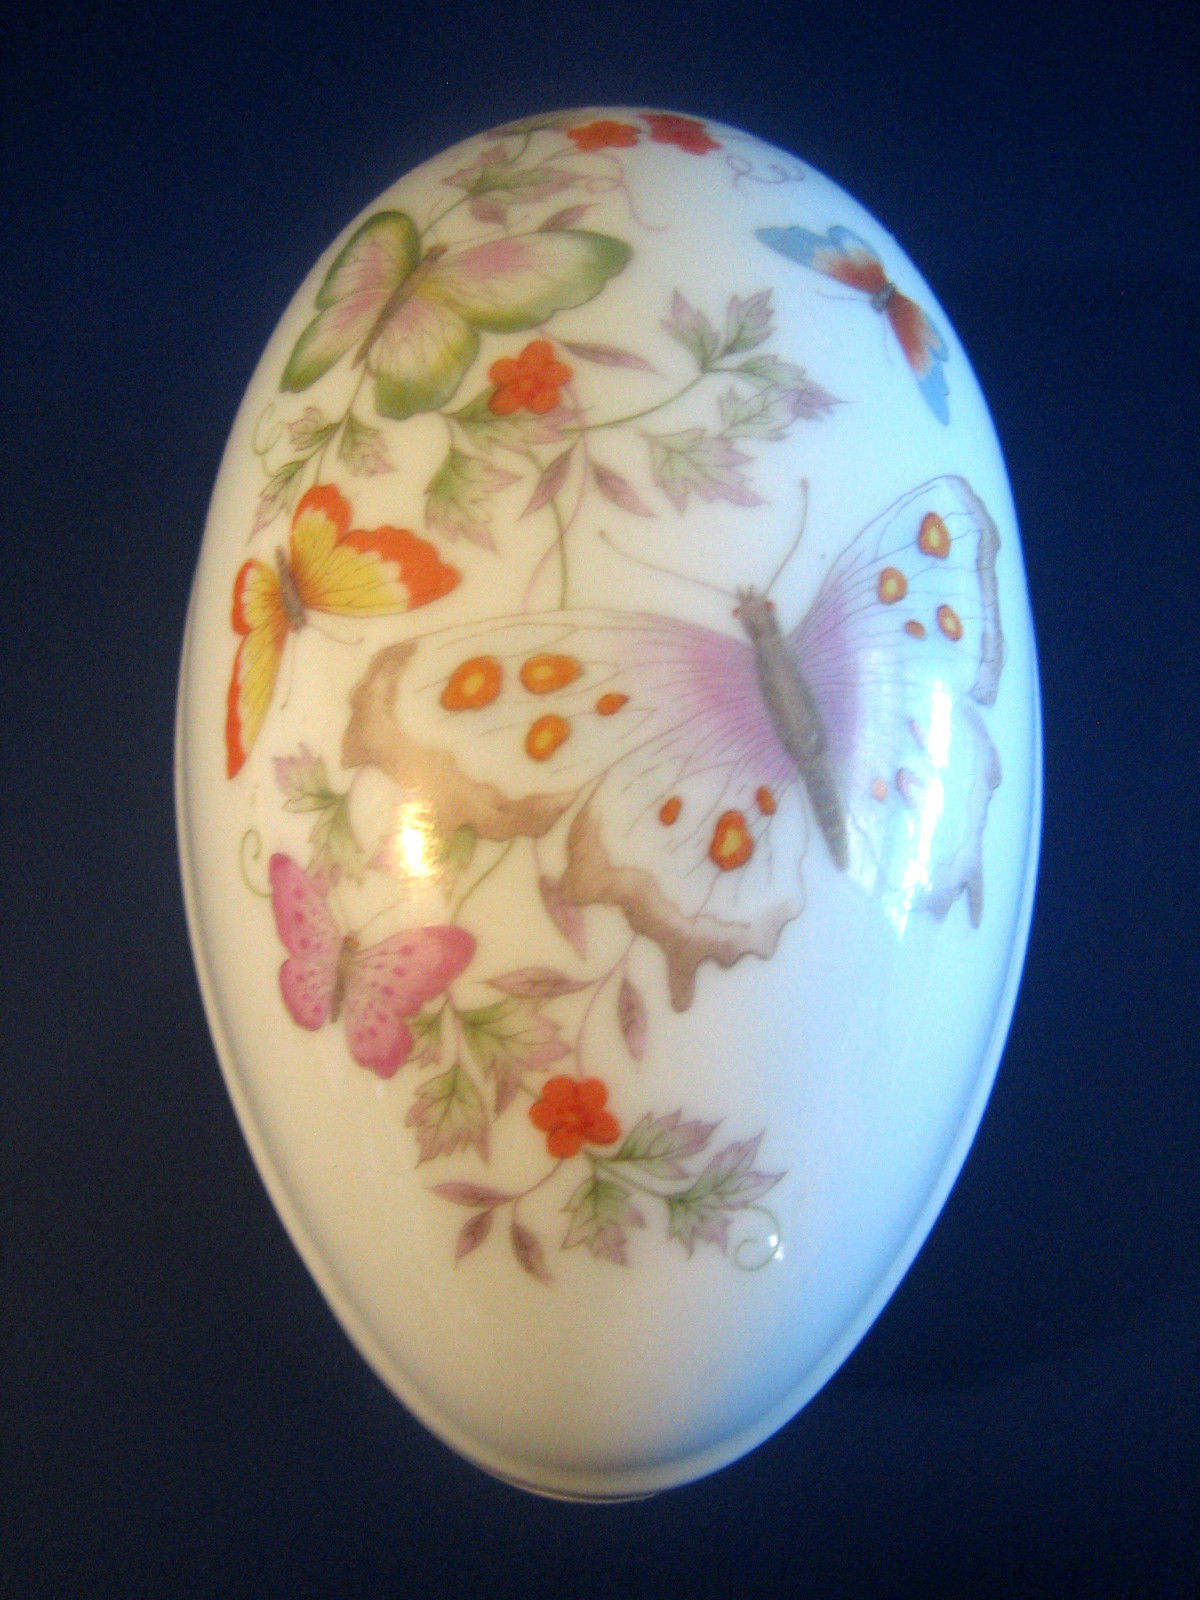 Vintage Avon 1974 Egg Trinket Jewelry Box Butterflies 22K Gold Fine Porcelain